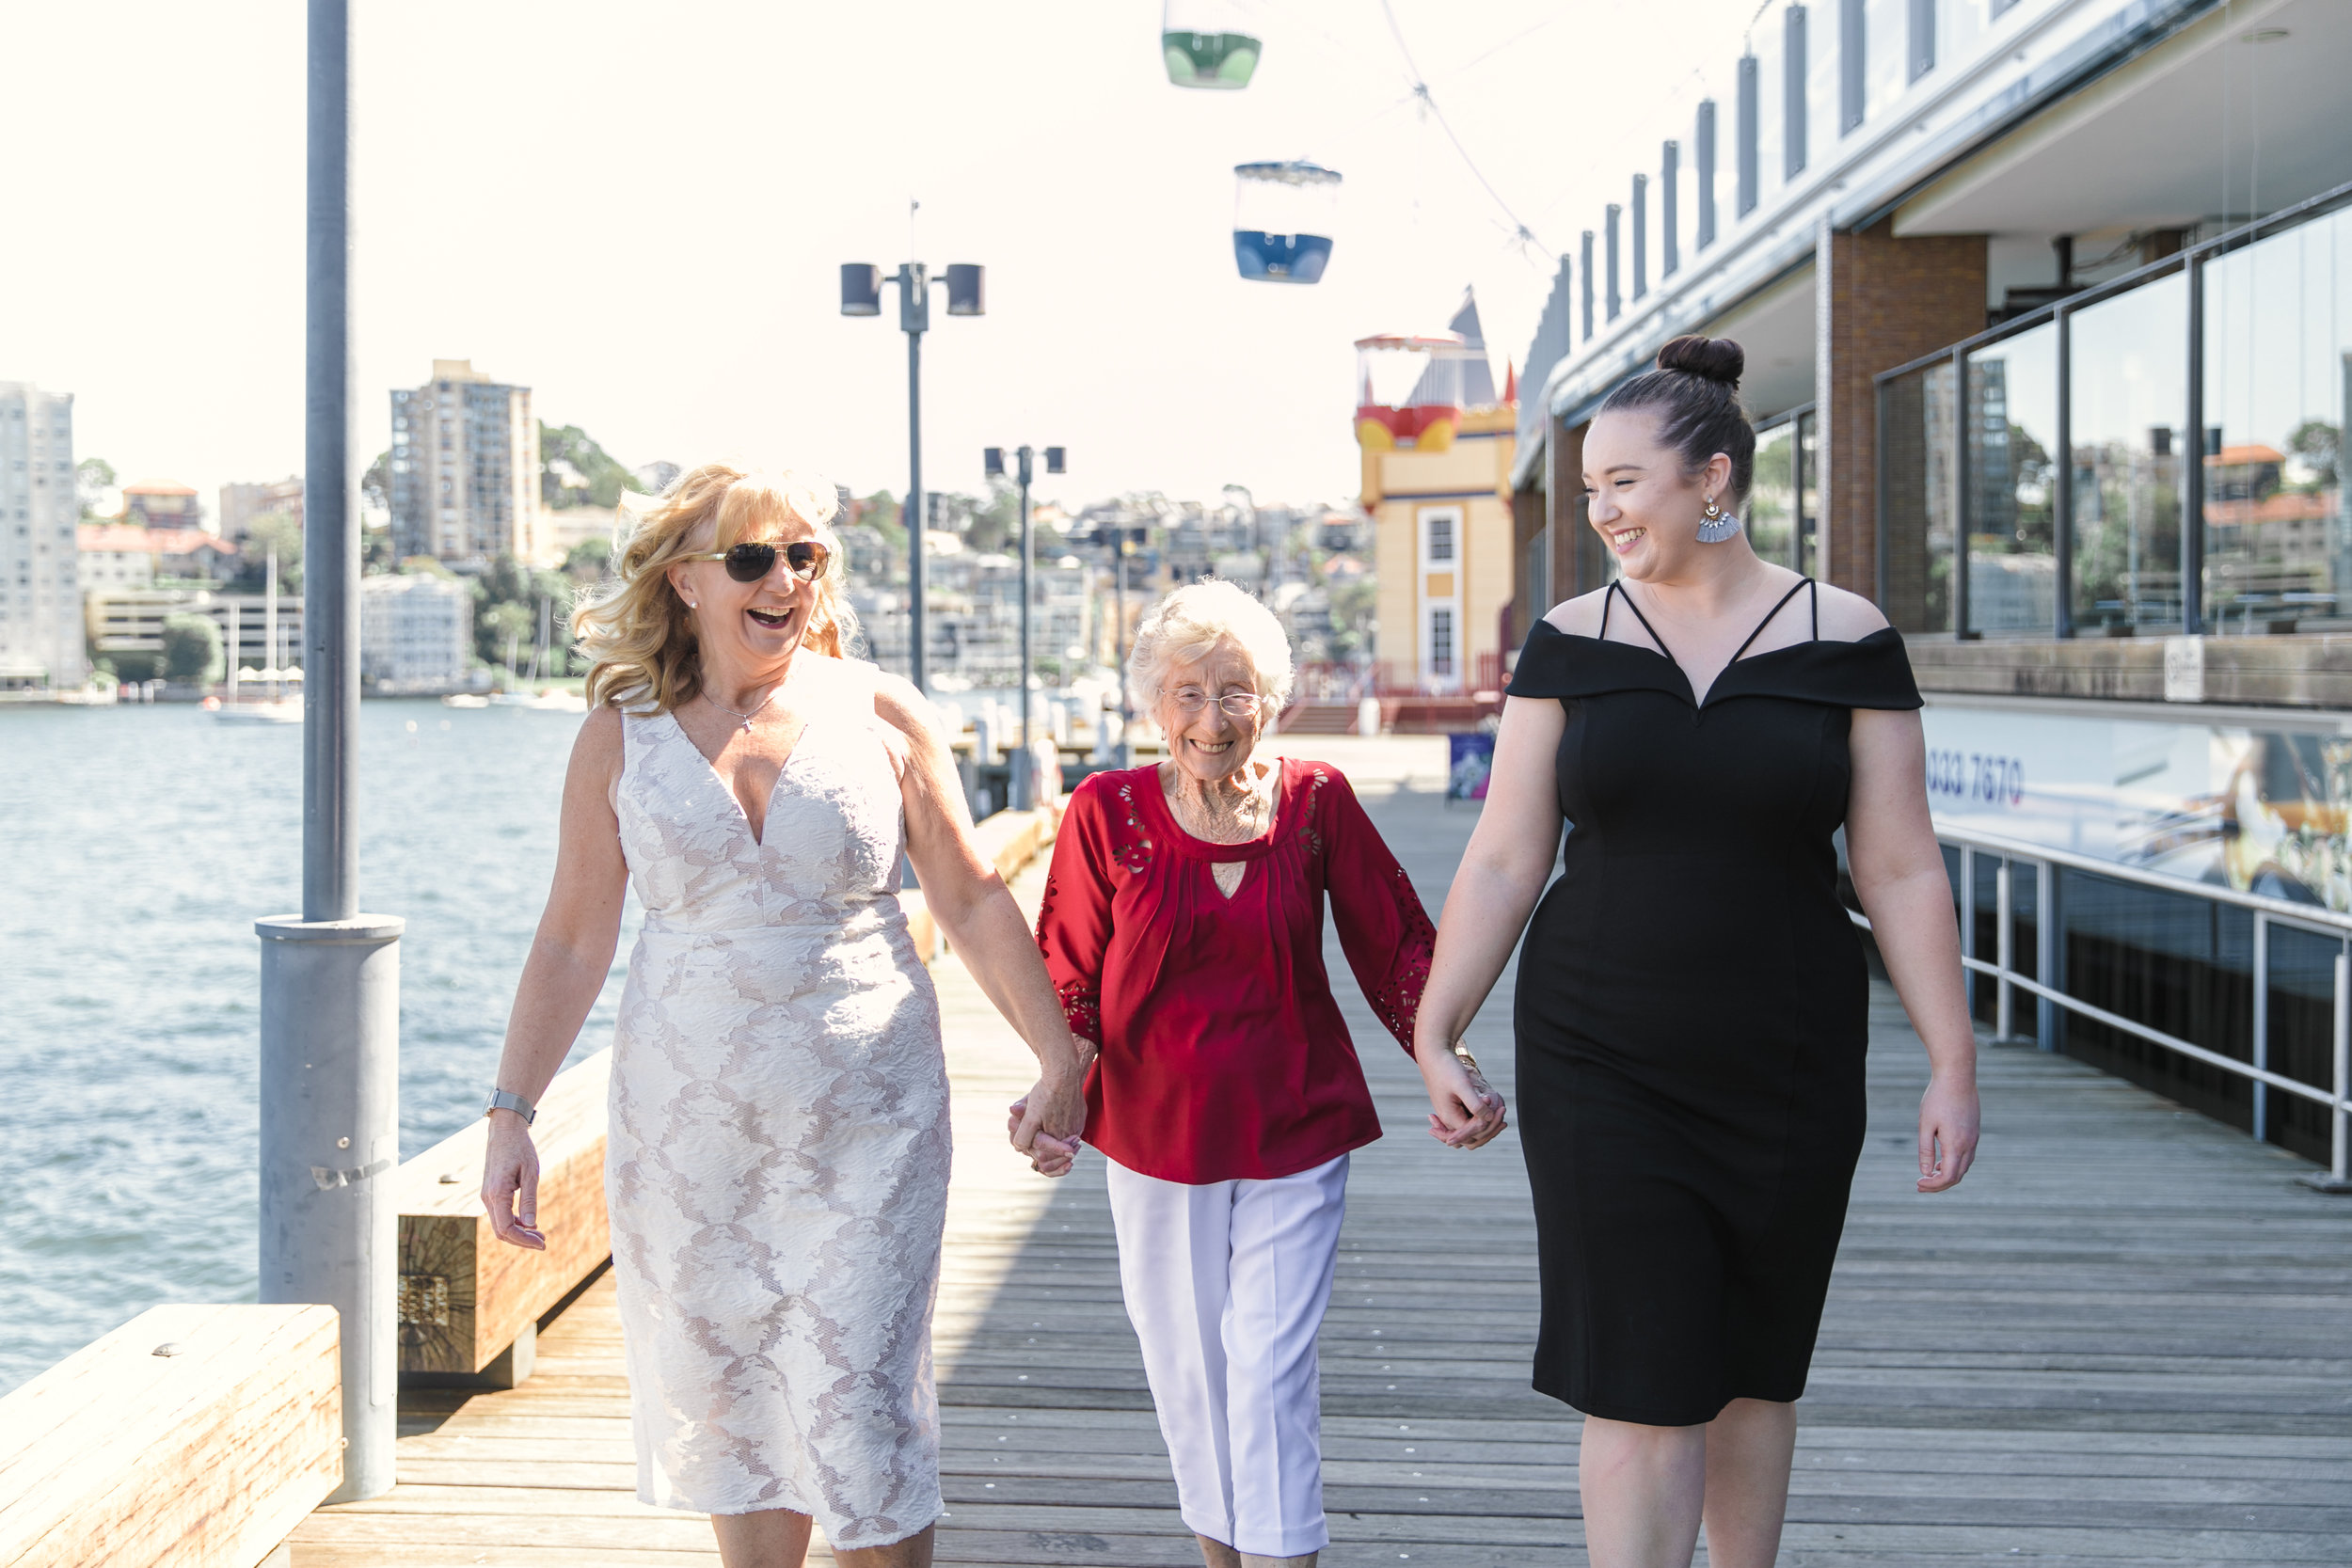 Photographed With Love - Candid Family Photography Sydney